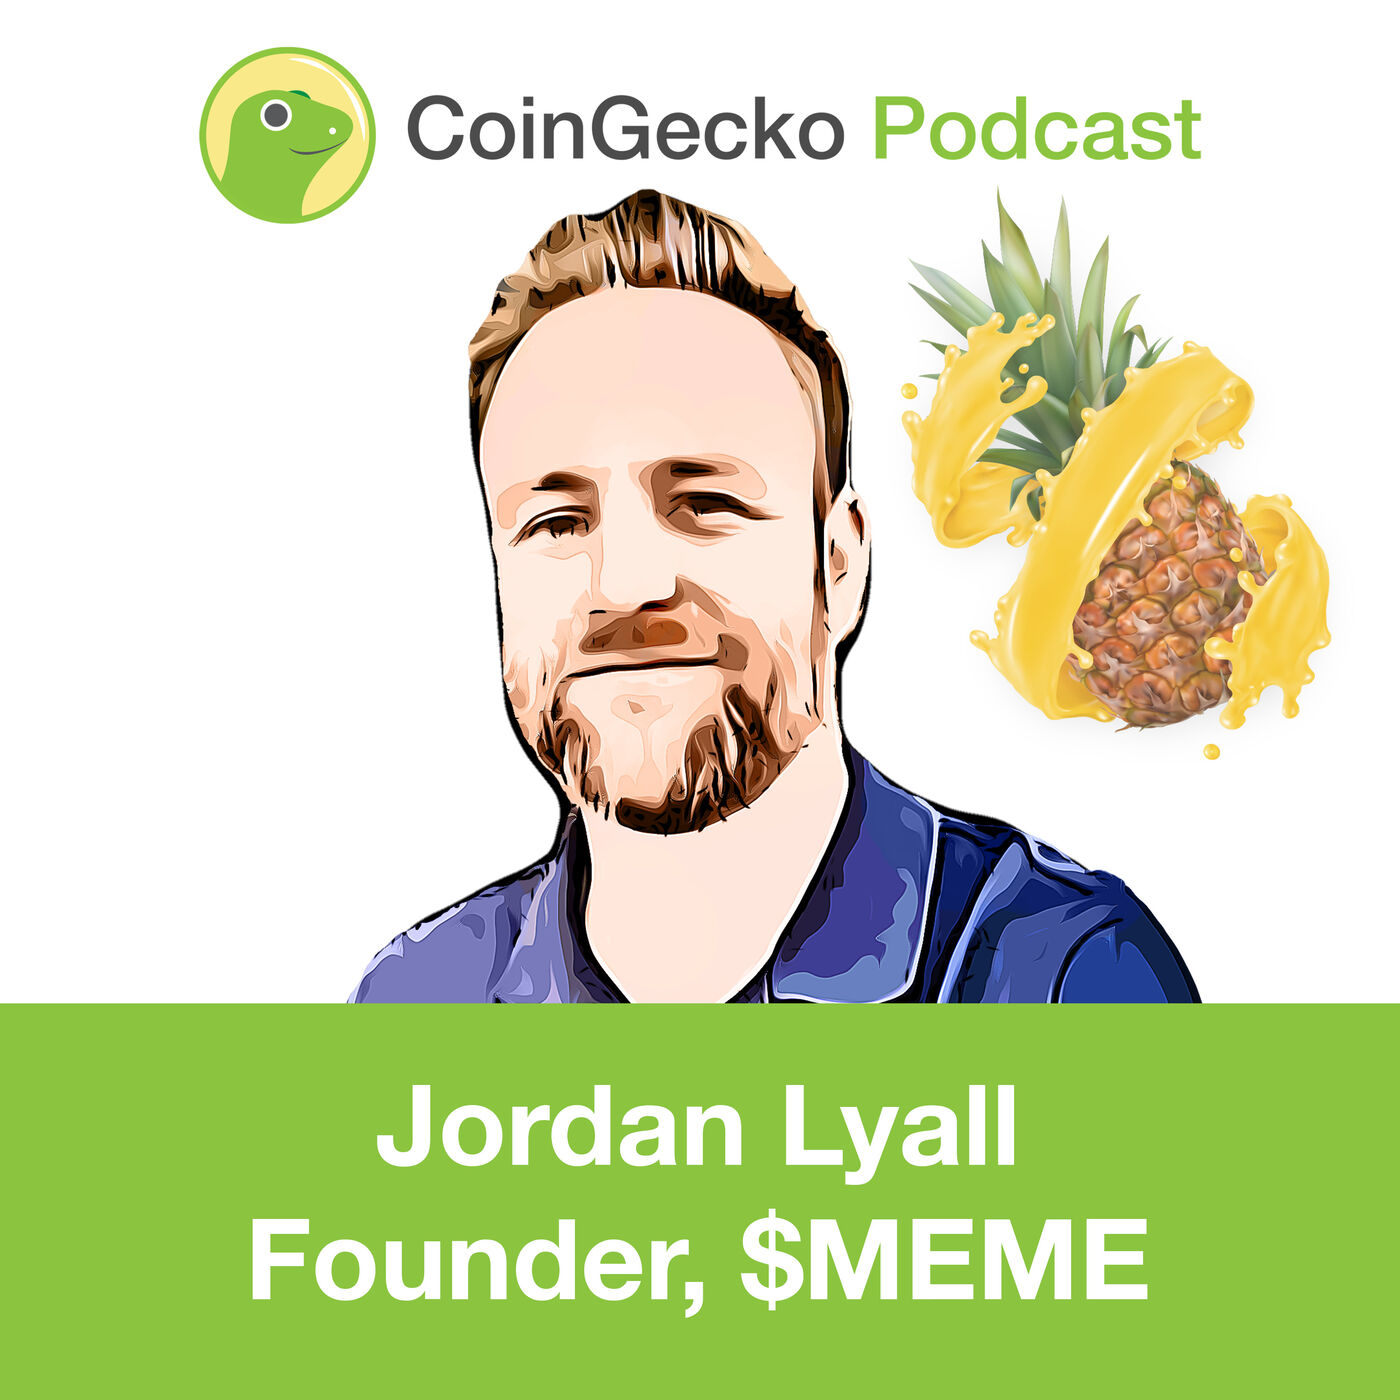 Jordan Lyall, Founder of $MEME Project Shares his Thoughts on the Intersection of DeFi and NFT – Ep. 22